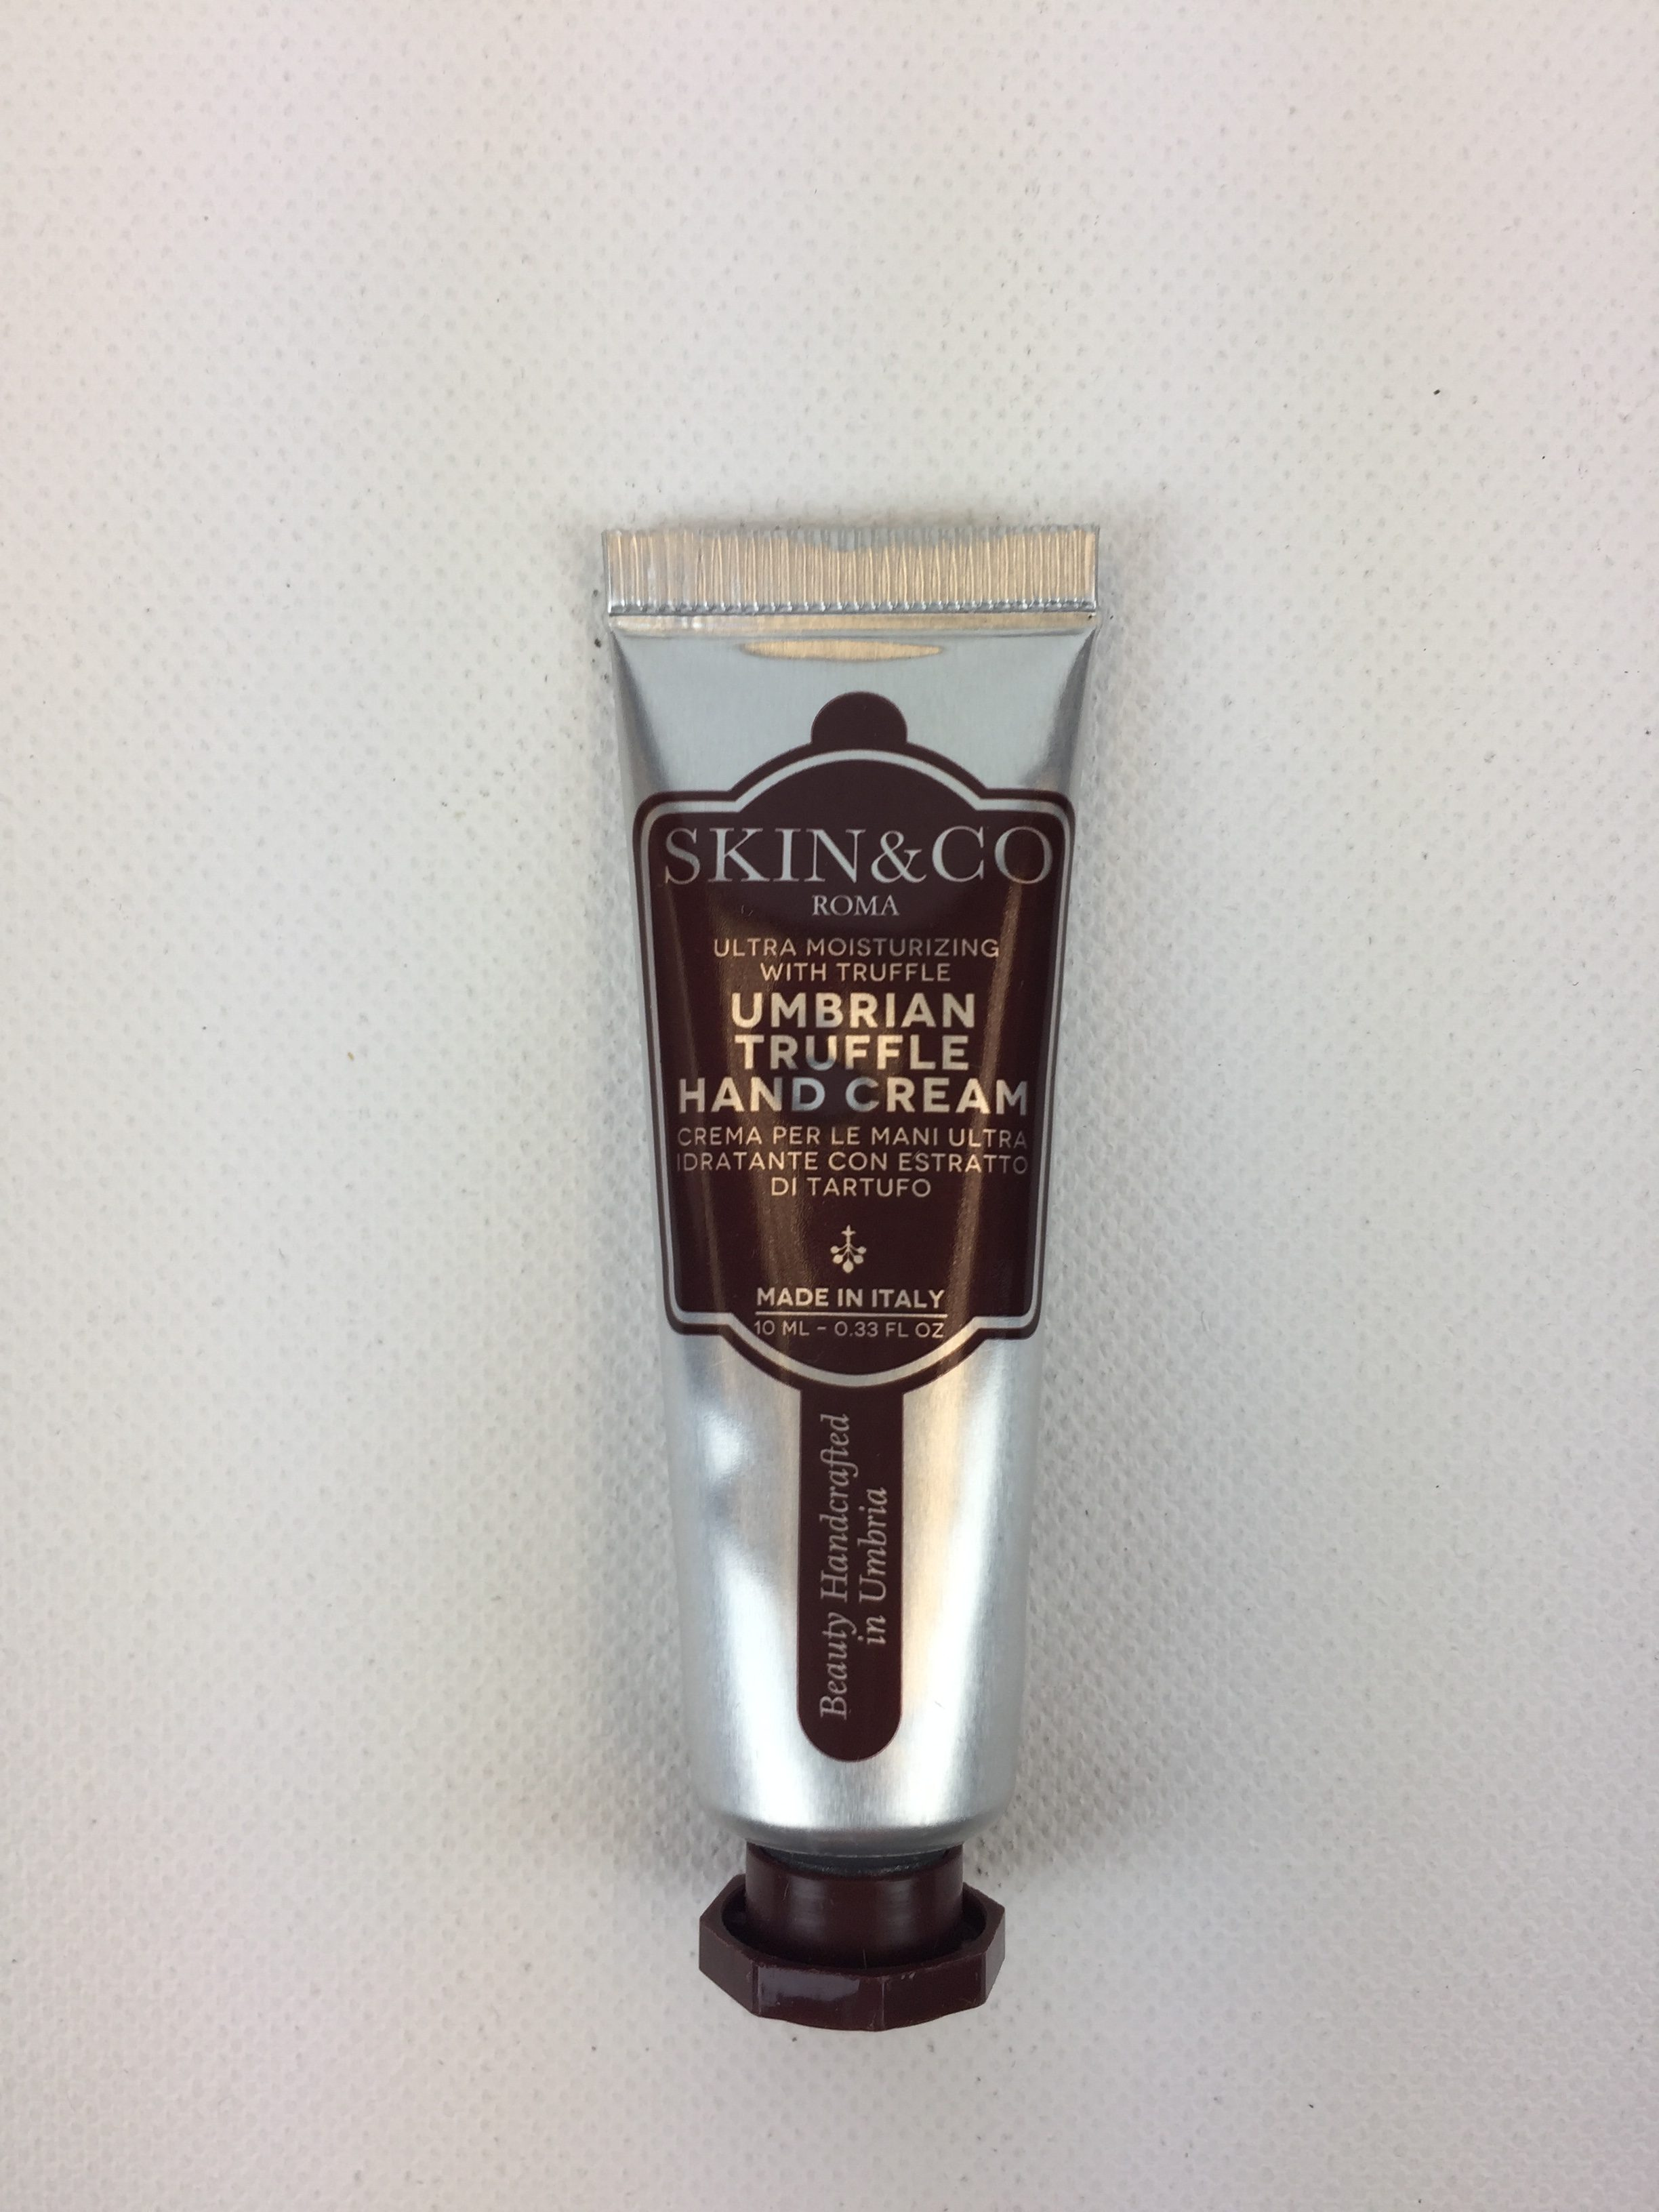 Beauty Crush: SKIN & CO Roma Umbrian Truffle Hand Cream